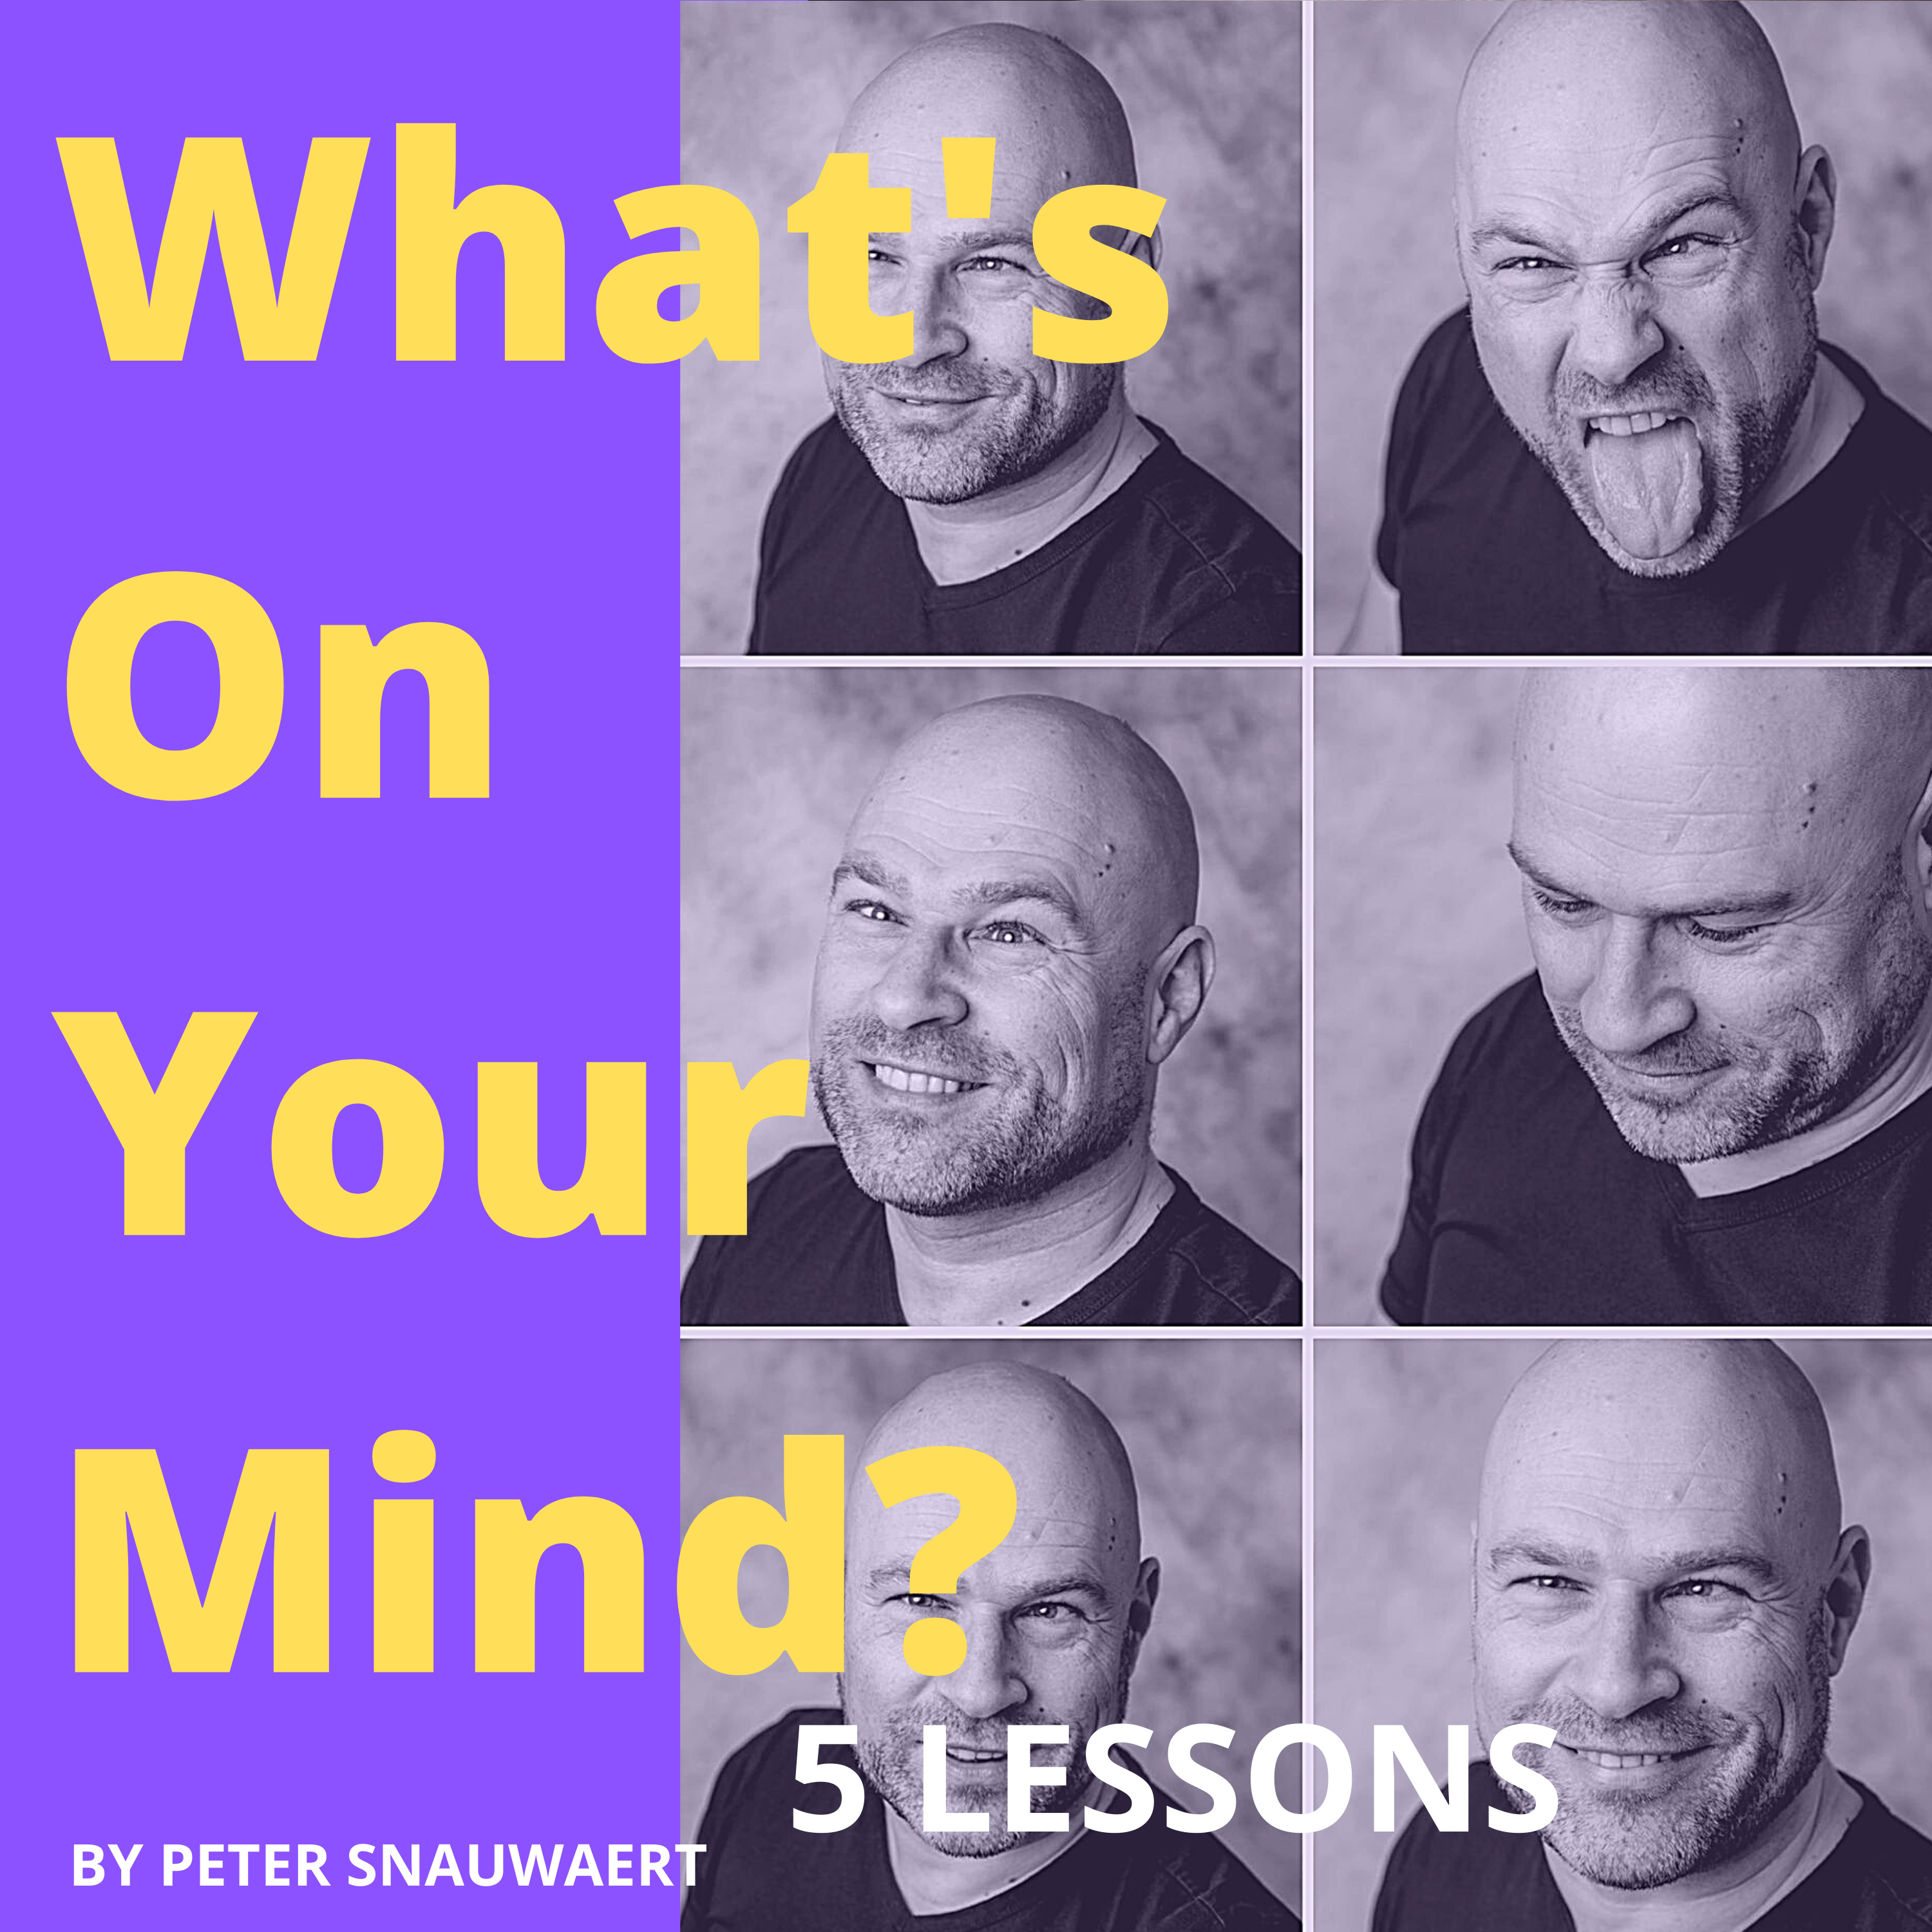 1 Year Of What's On Your Mind: The Lessons | What's On Your Mind?